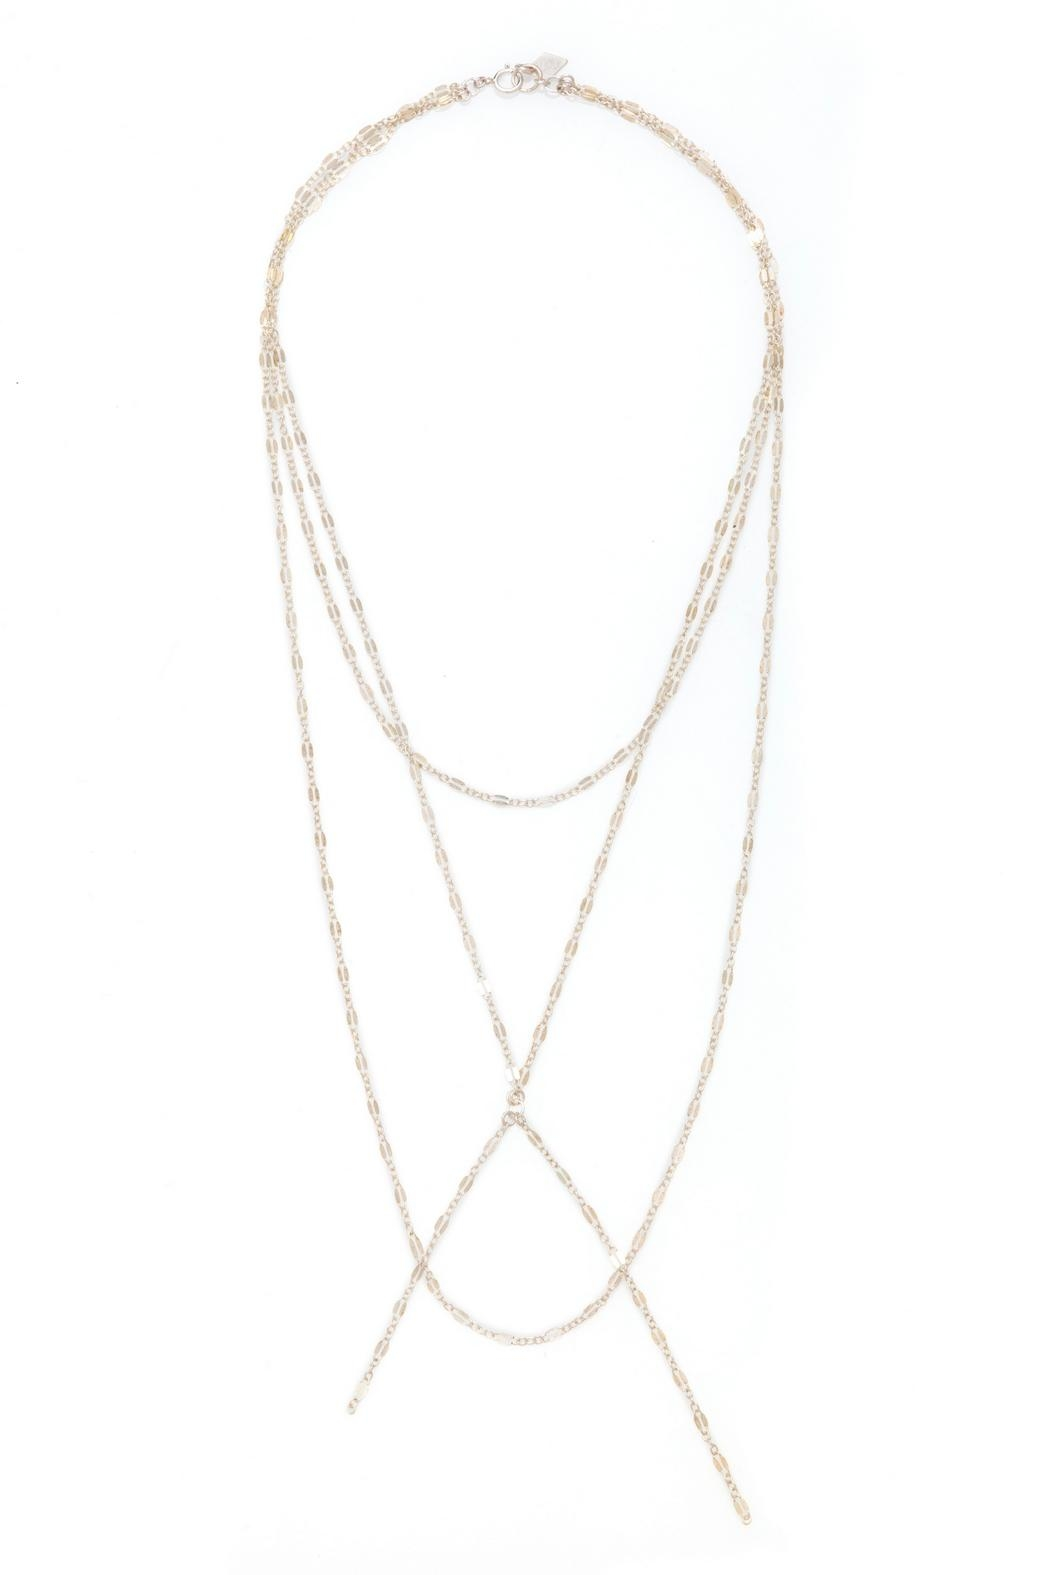 Joy Dravecky Clover Tri-Layer Necklace - Main Image